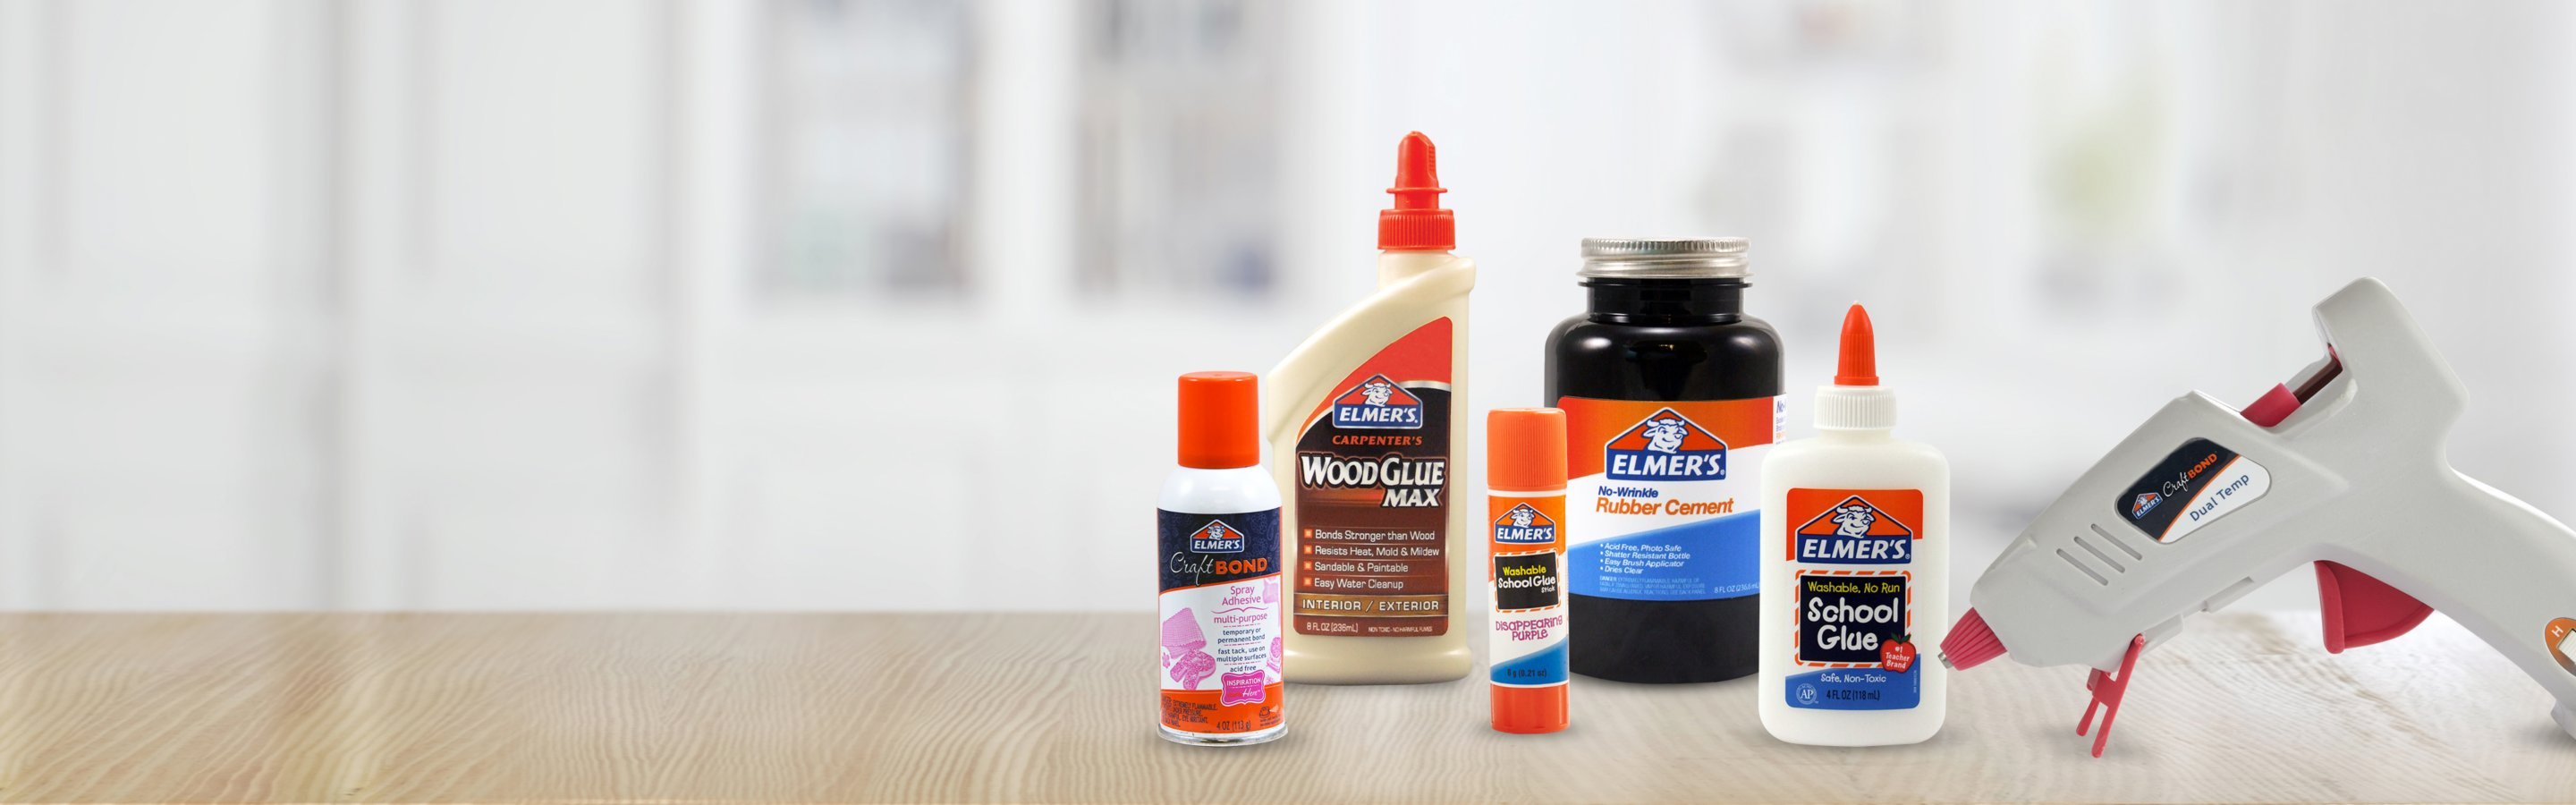 assorted glue products